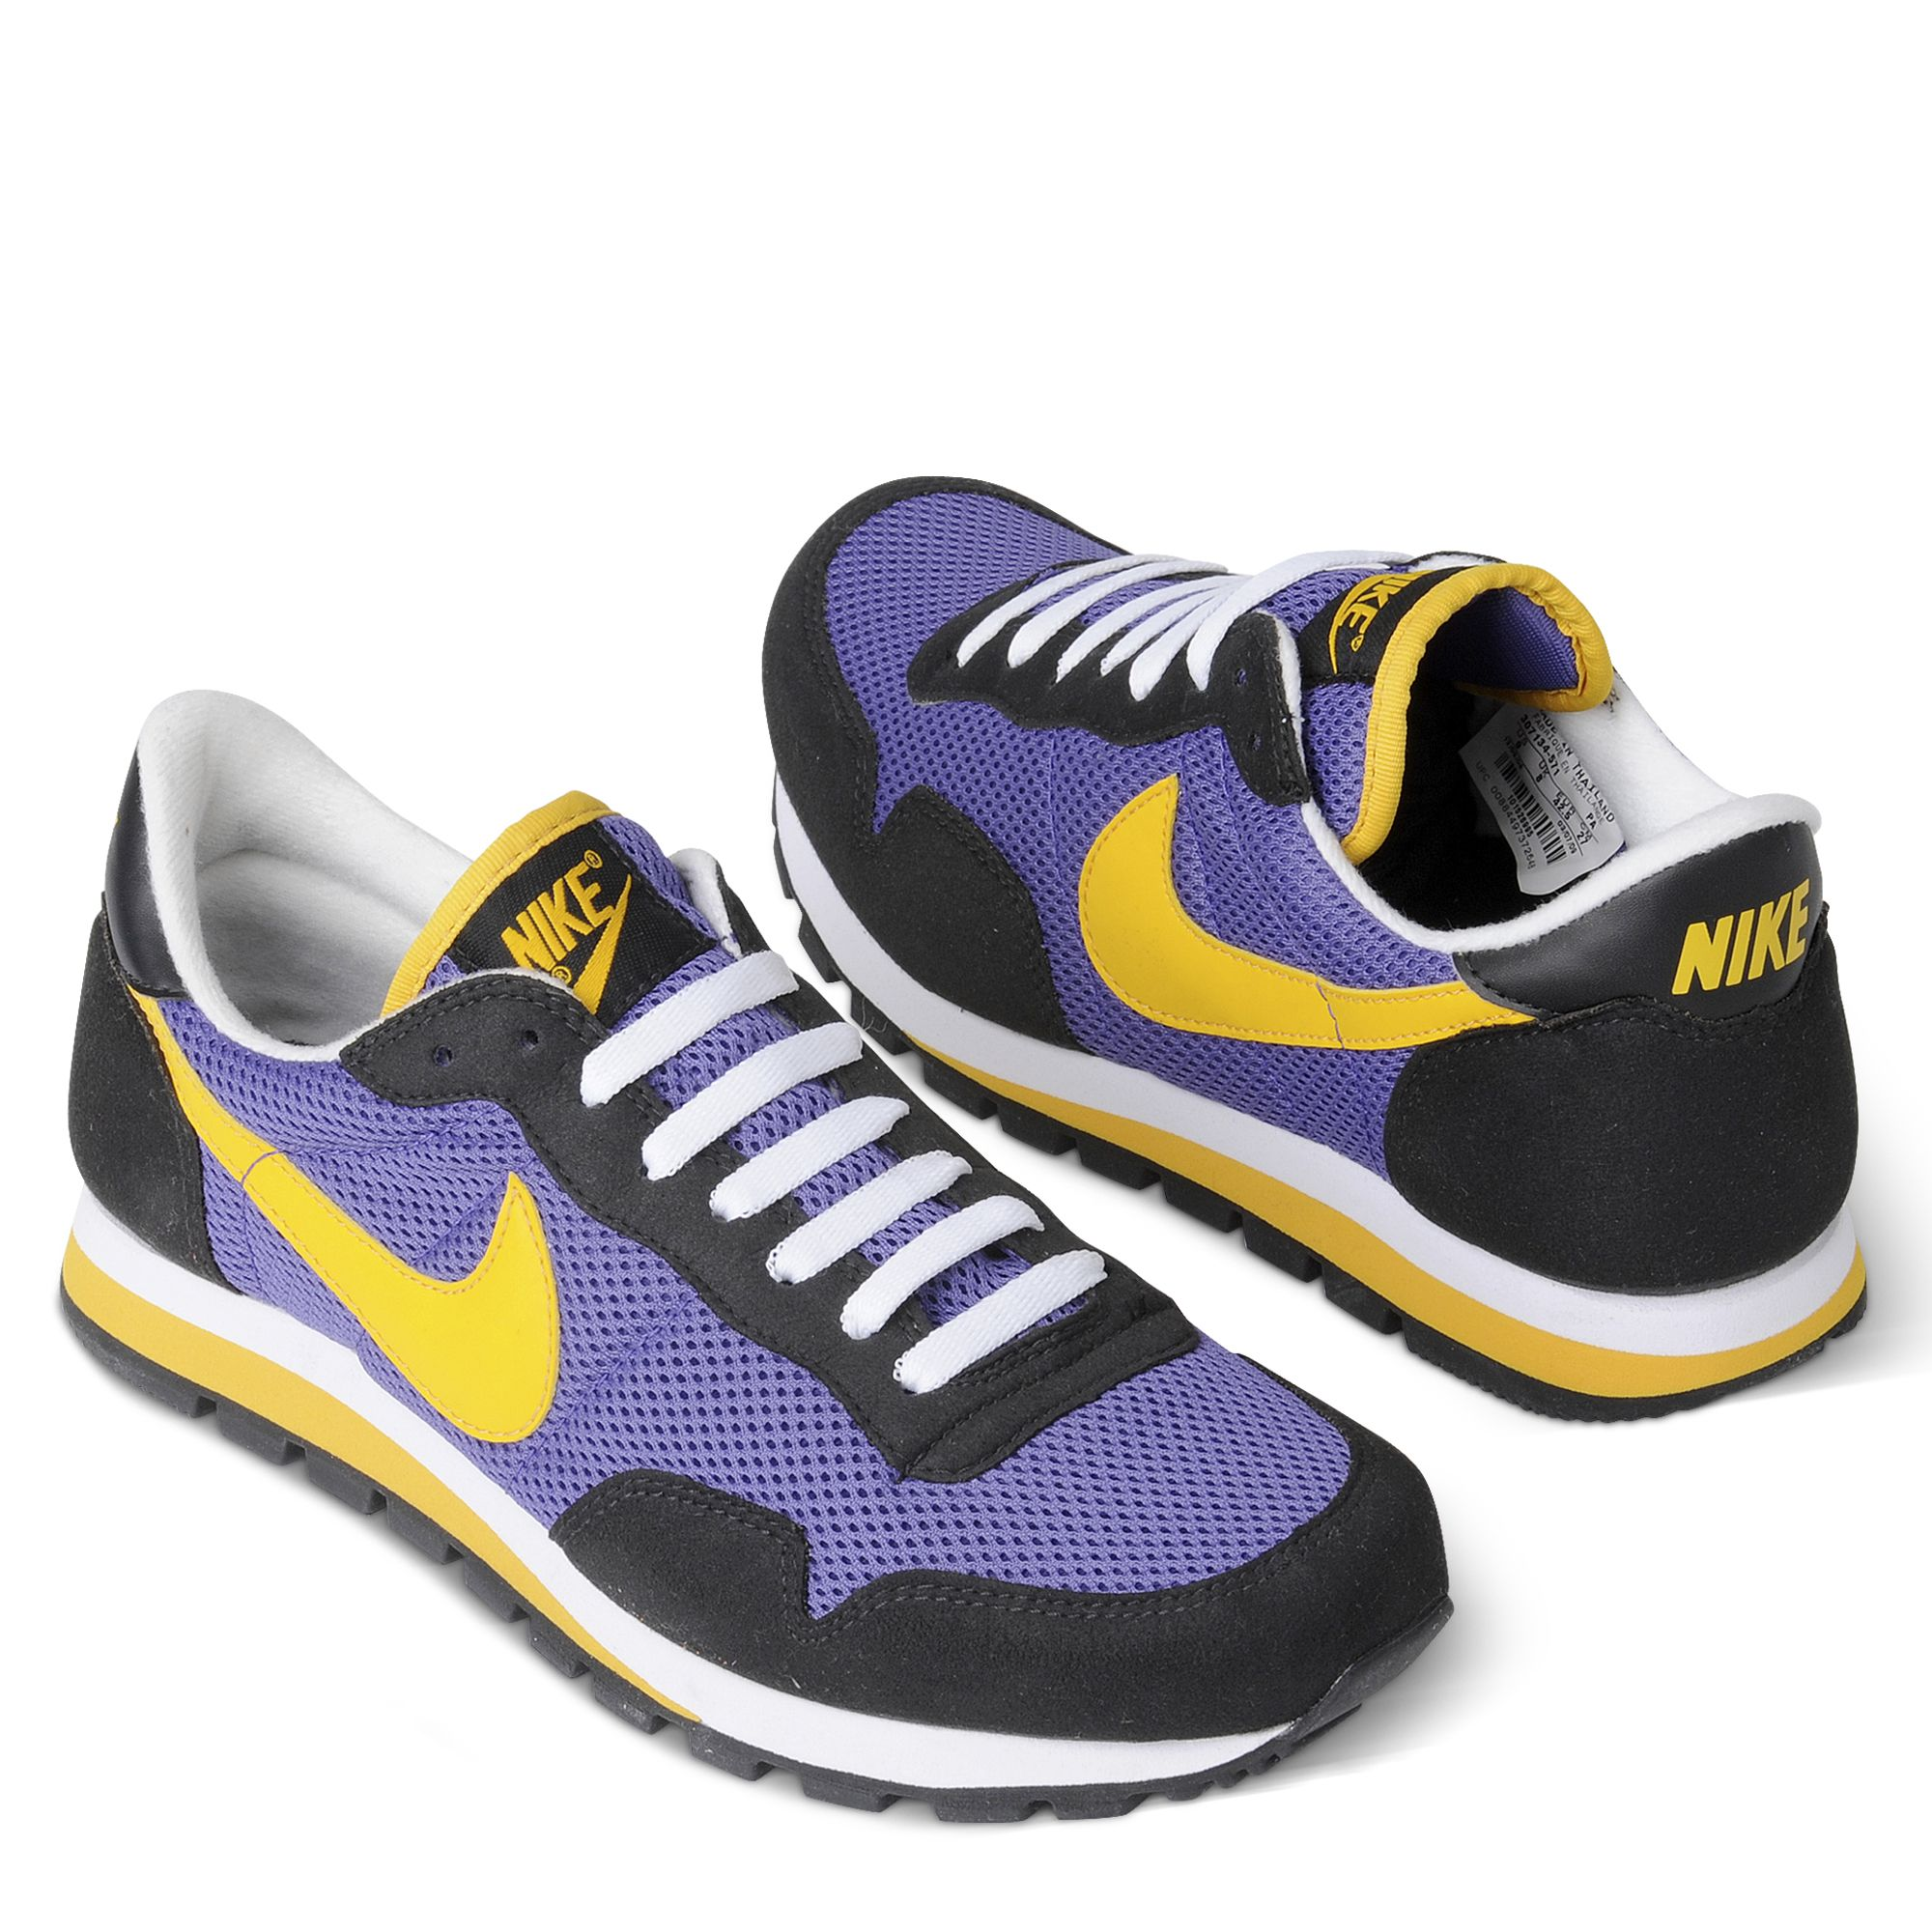 a5db5e33352b Nike Metro Plus Retro Running Shoes in Purple for Men - Lyst